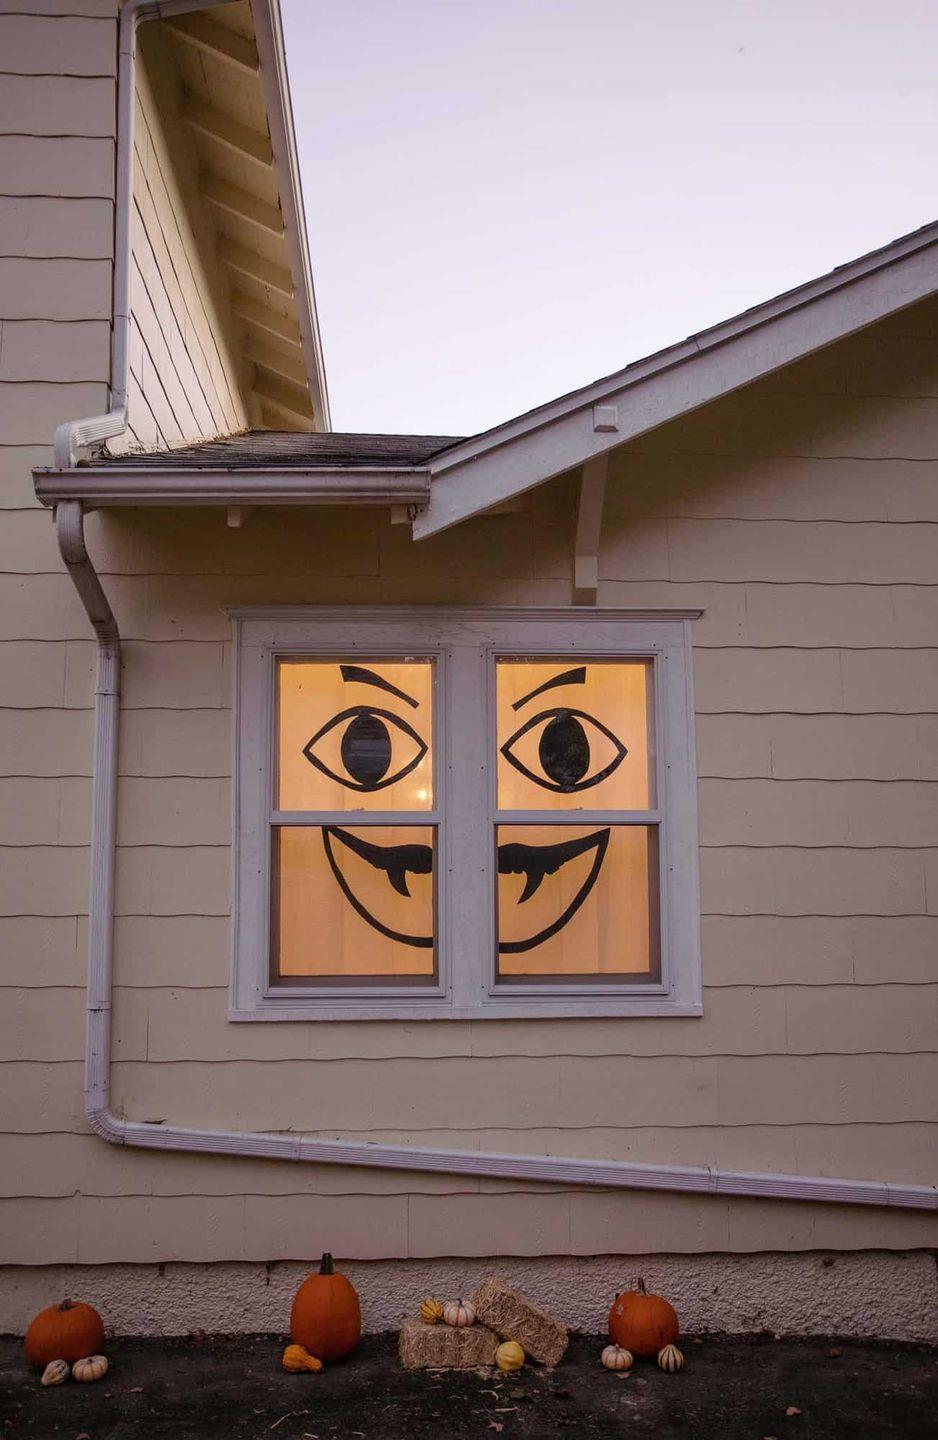 """<p>Give passersby a fall fright by pasting spooky faces inside any front-facing windows on your porch. </p><p><a class=""""link rapid-noclick-resp"""" href=""""https://abeautifulmess.com/easy-halloween-window-decor/"""" rel=""""nofollow noopener"""" target=""""_blank"""" data-ylk=""""slk:GET THE TUTORIAL"""">GET THE TUTORIAL</a></p>"""